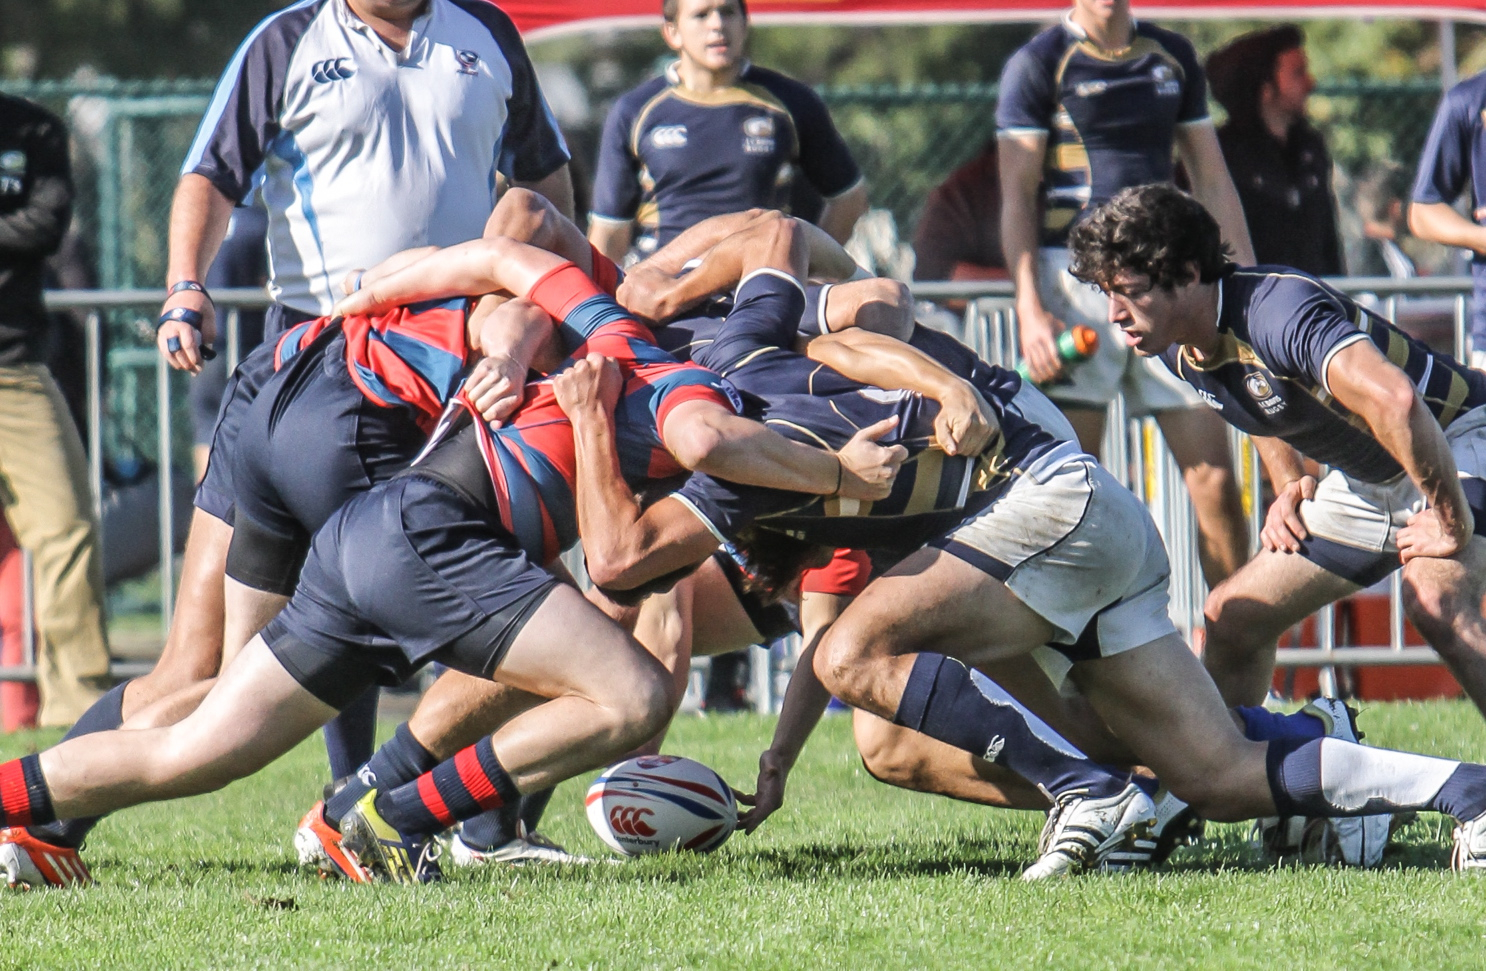 USA College 7s: Field set for College 7s National Championship